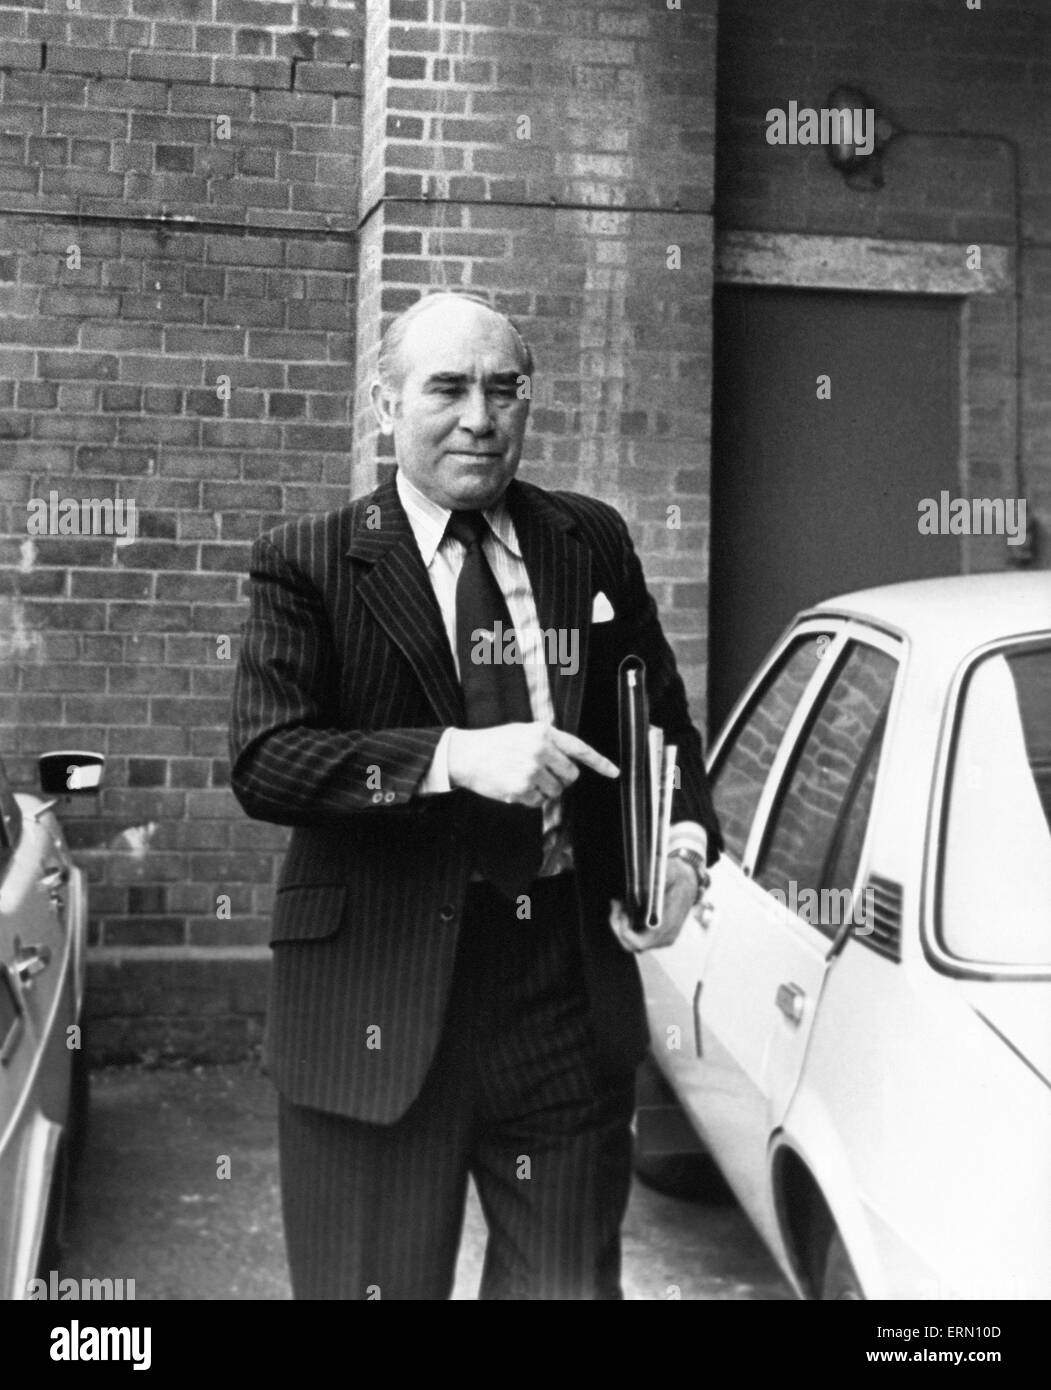 Birmingham City manager Sir Alf Ramsey held a press conference at the Birmingham training ground. 8th March 1978. - Stock Image